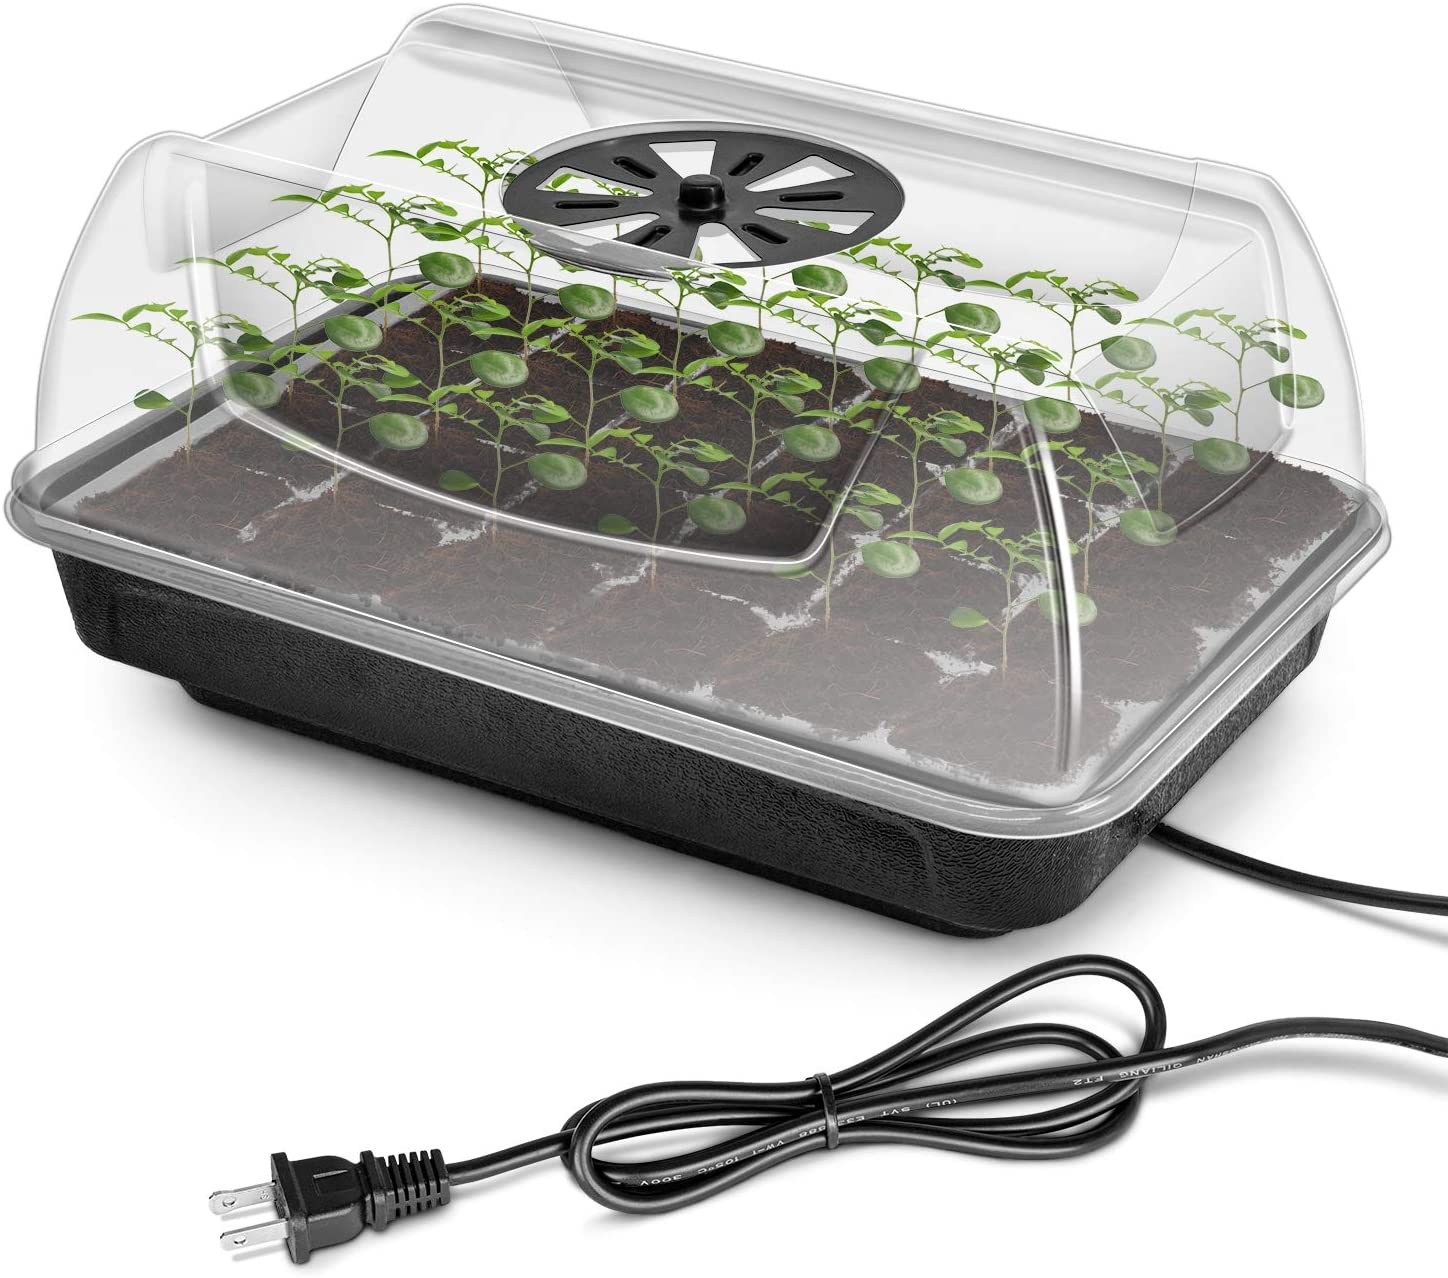 iPower Heating Seed Starter Germination Kit Seedling Propagation Tray with Heater and 5in Vented Humidity Dome, 1-Pack, Black&Transparent